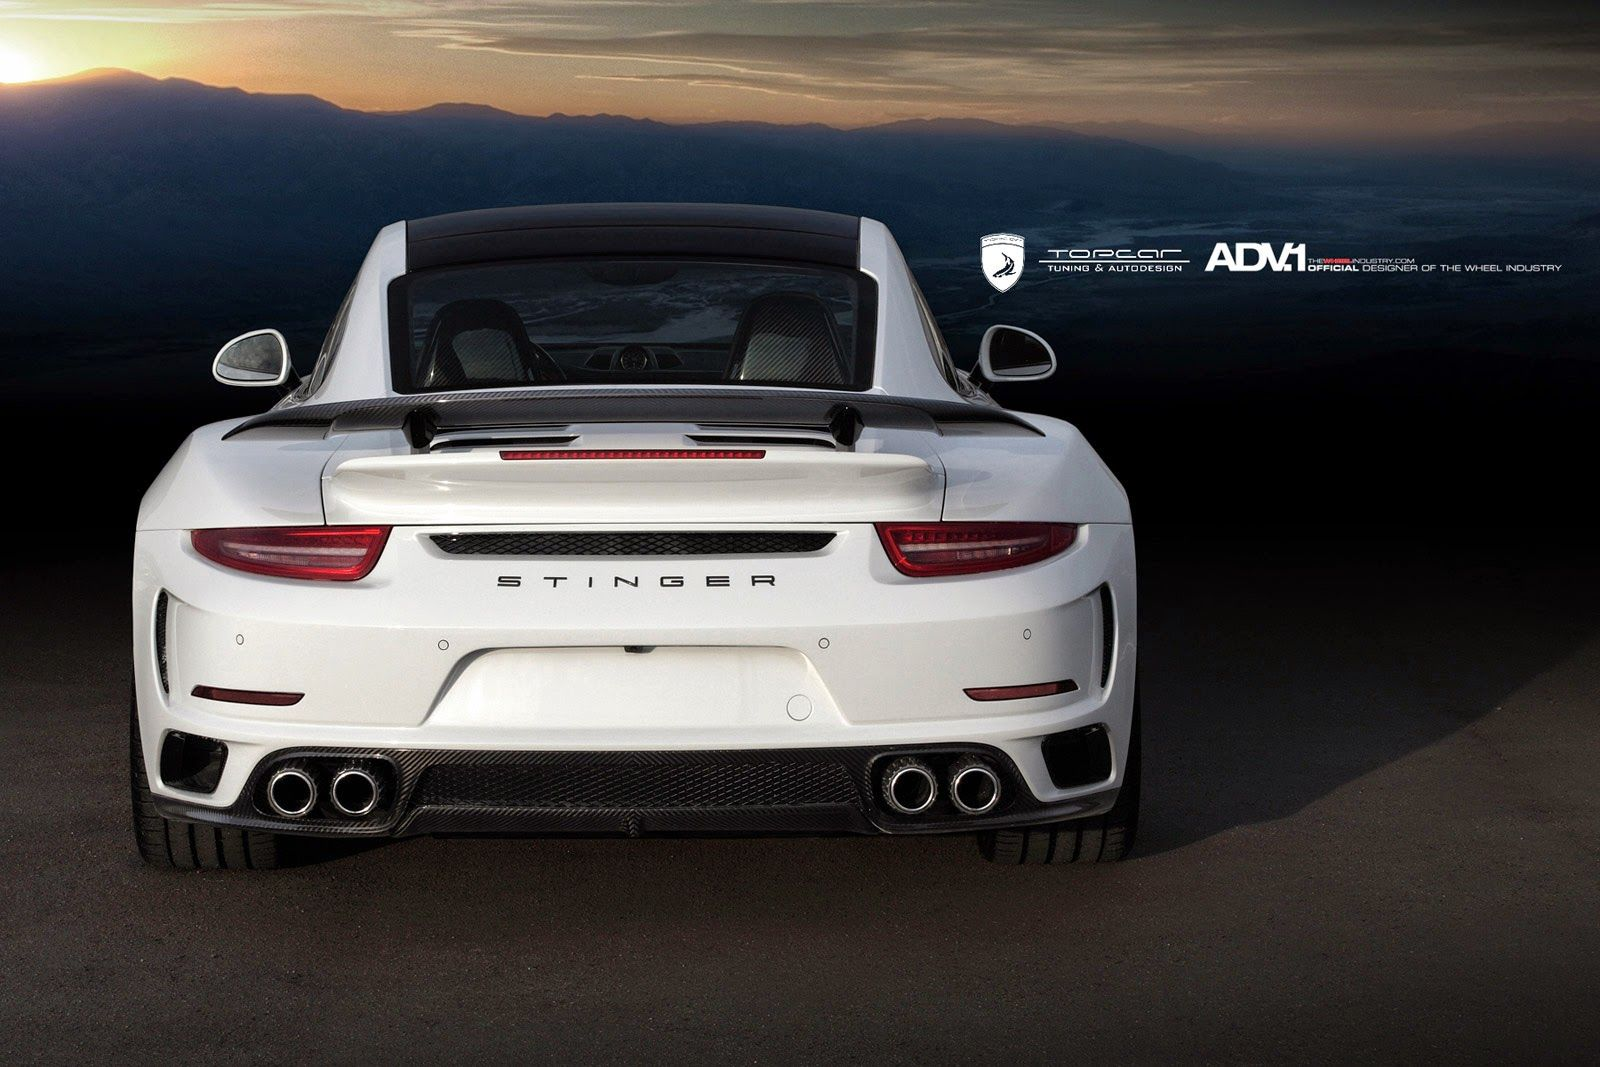 Porsche Stinger 991 Turbo On Adv5 M V1 Sl By Topcar Porsche